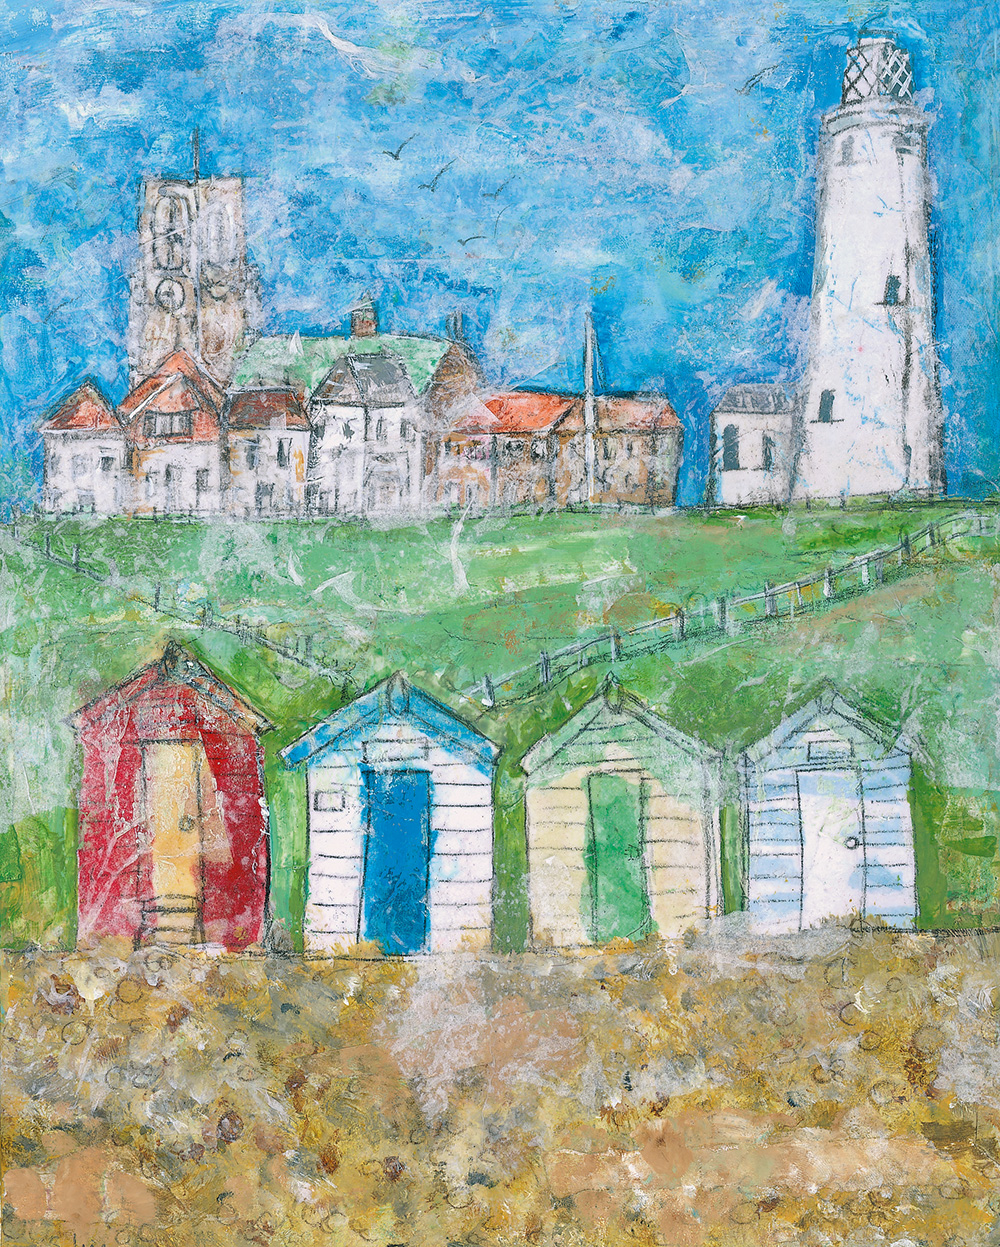 Southwold - Mixed media on canvas (limited edition giclee print available £40 and greeting card £2.50)